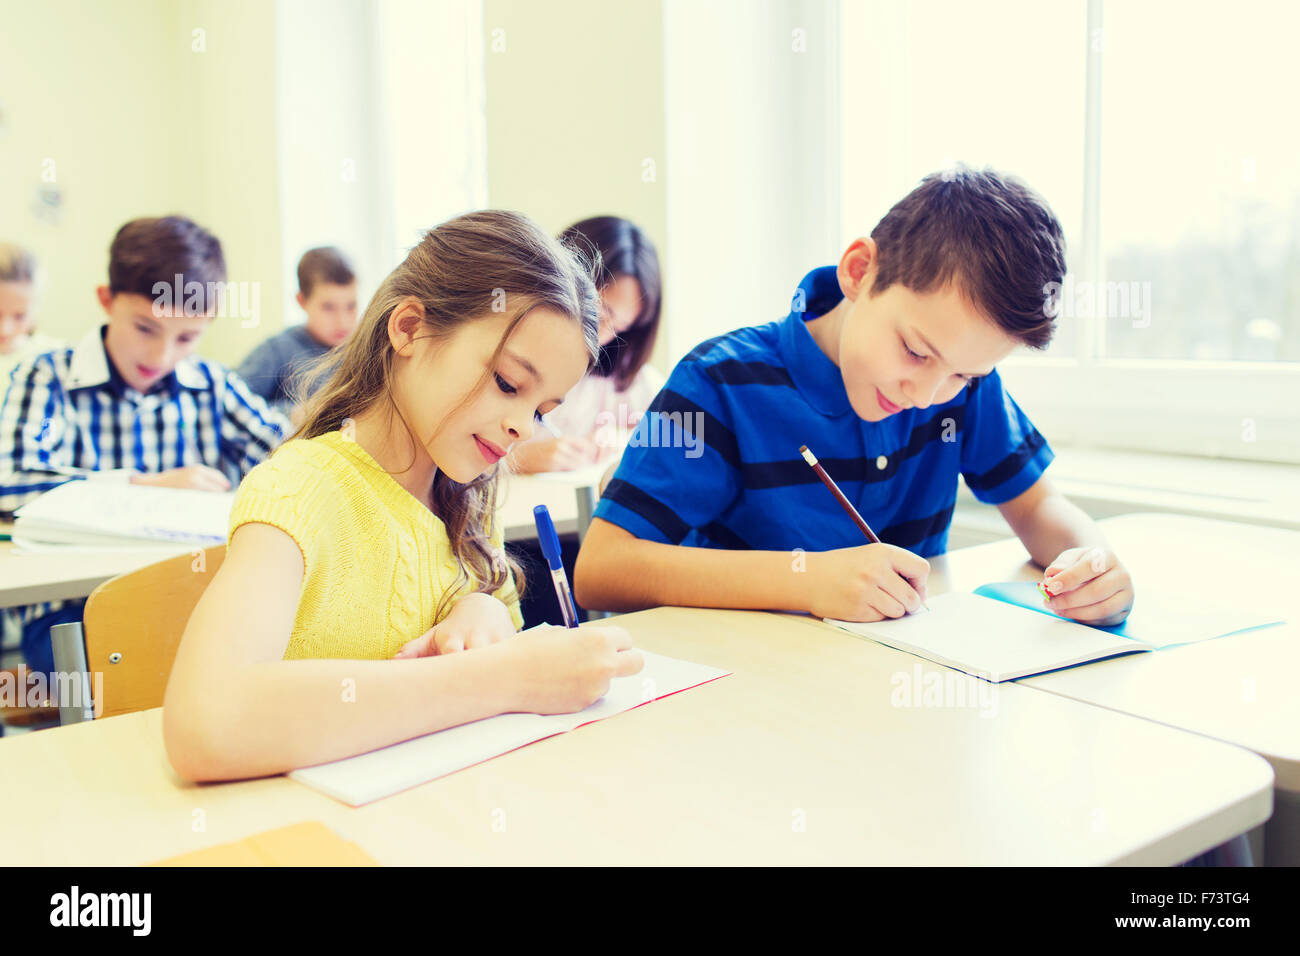 group of school kids writing test in classroom stock photo: 90439556